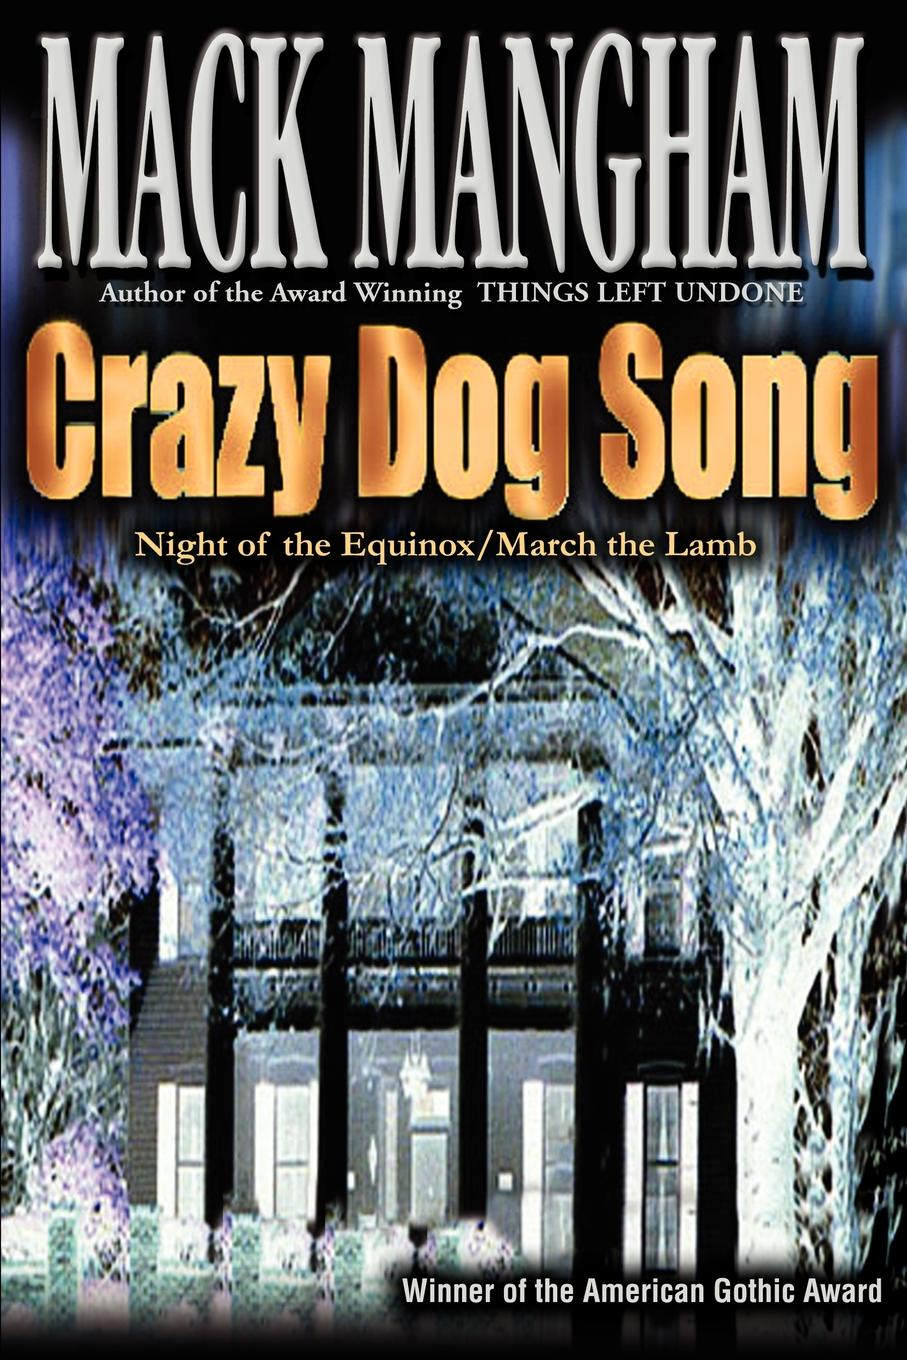 Mack Mangham Crazy Dog Song. Night of the Equinox/March the Lamb happy dog supreme baby lamb